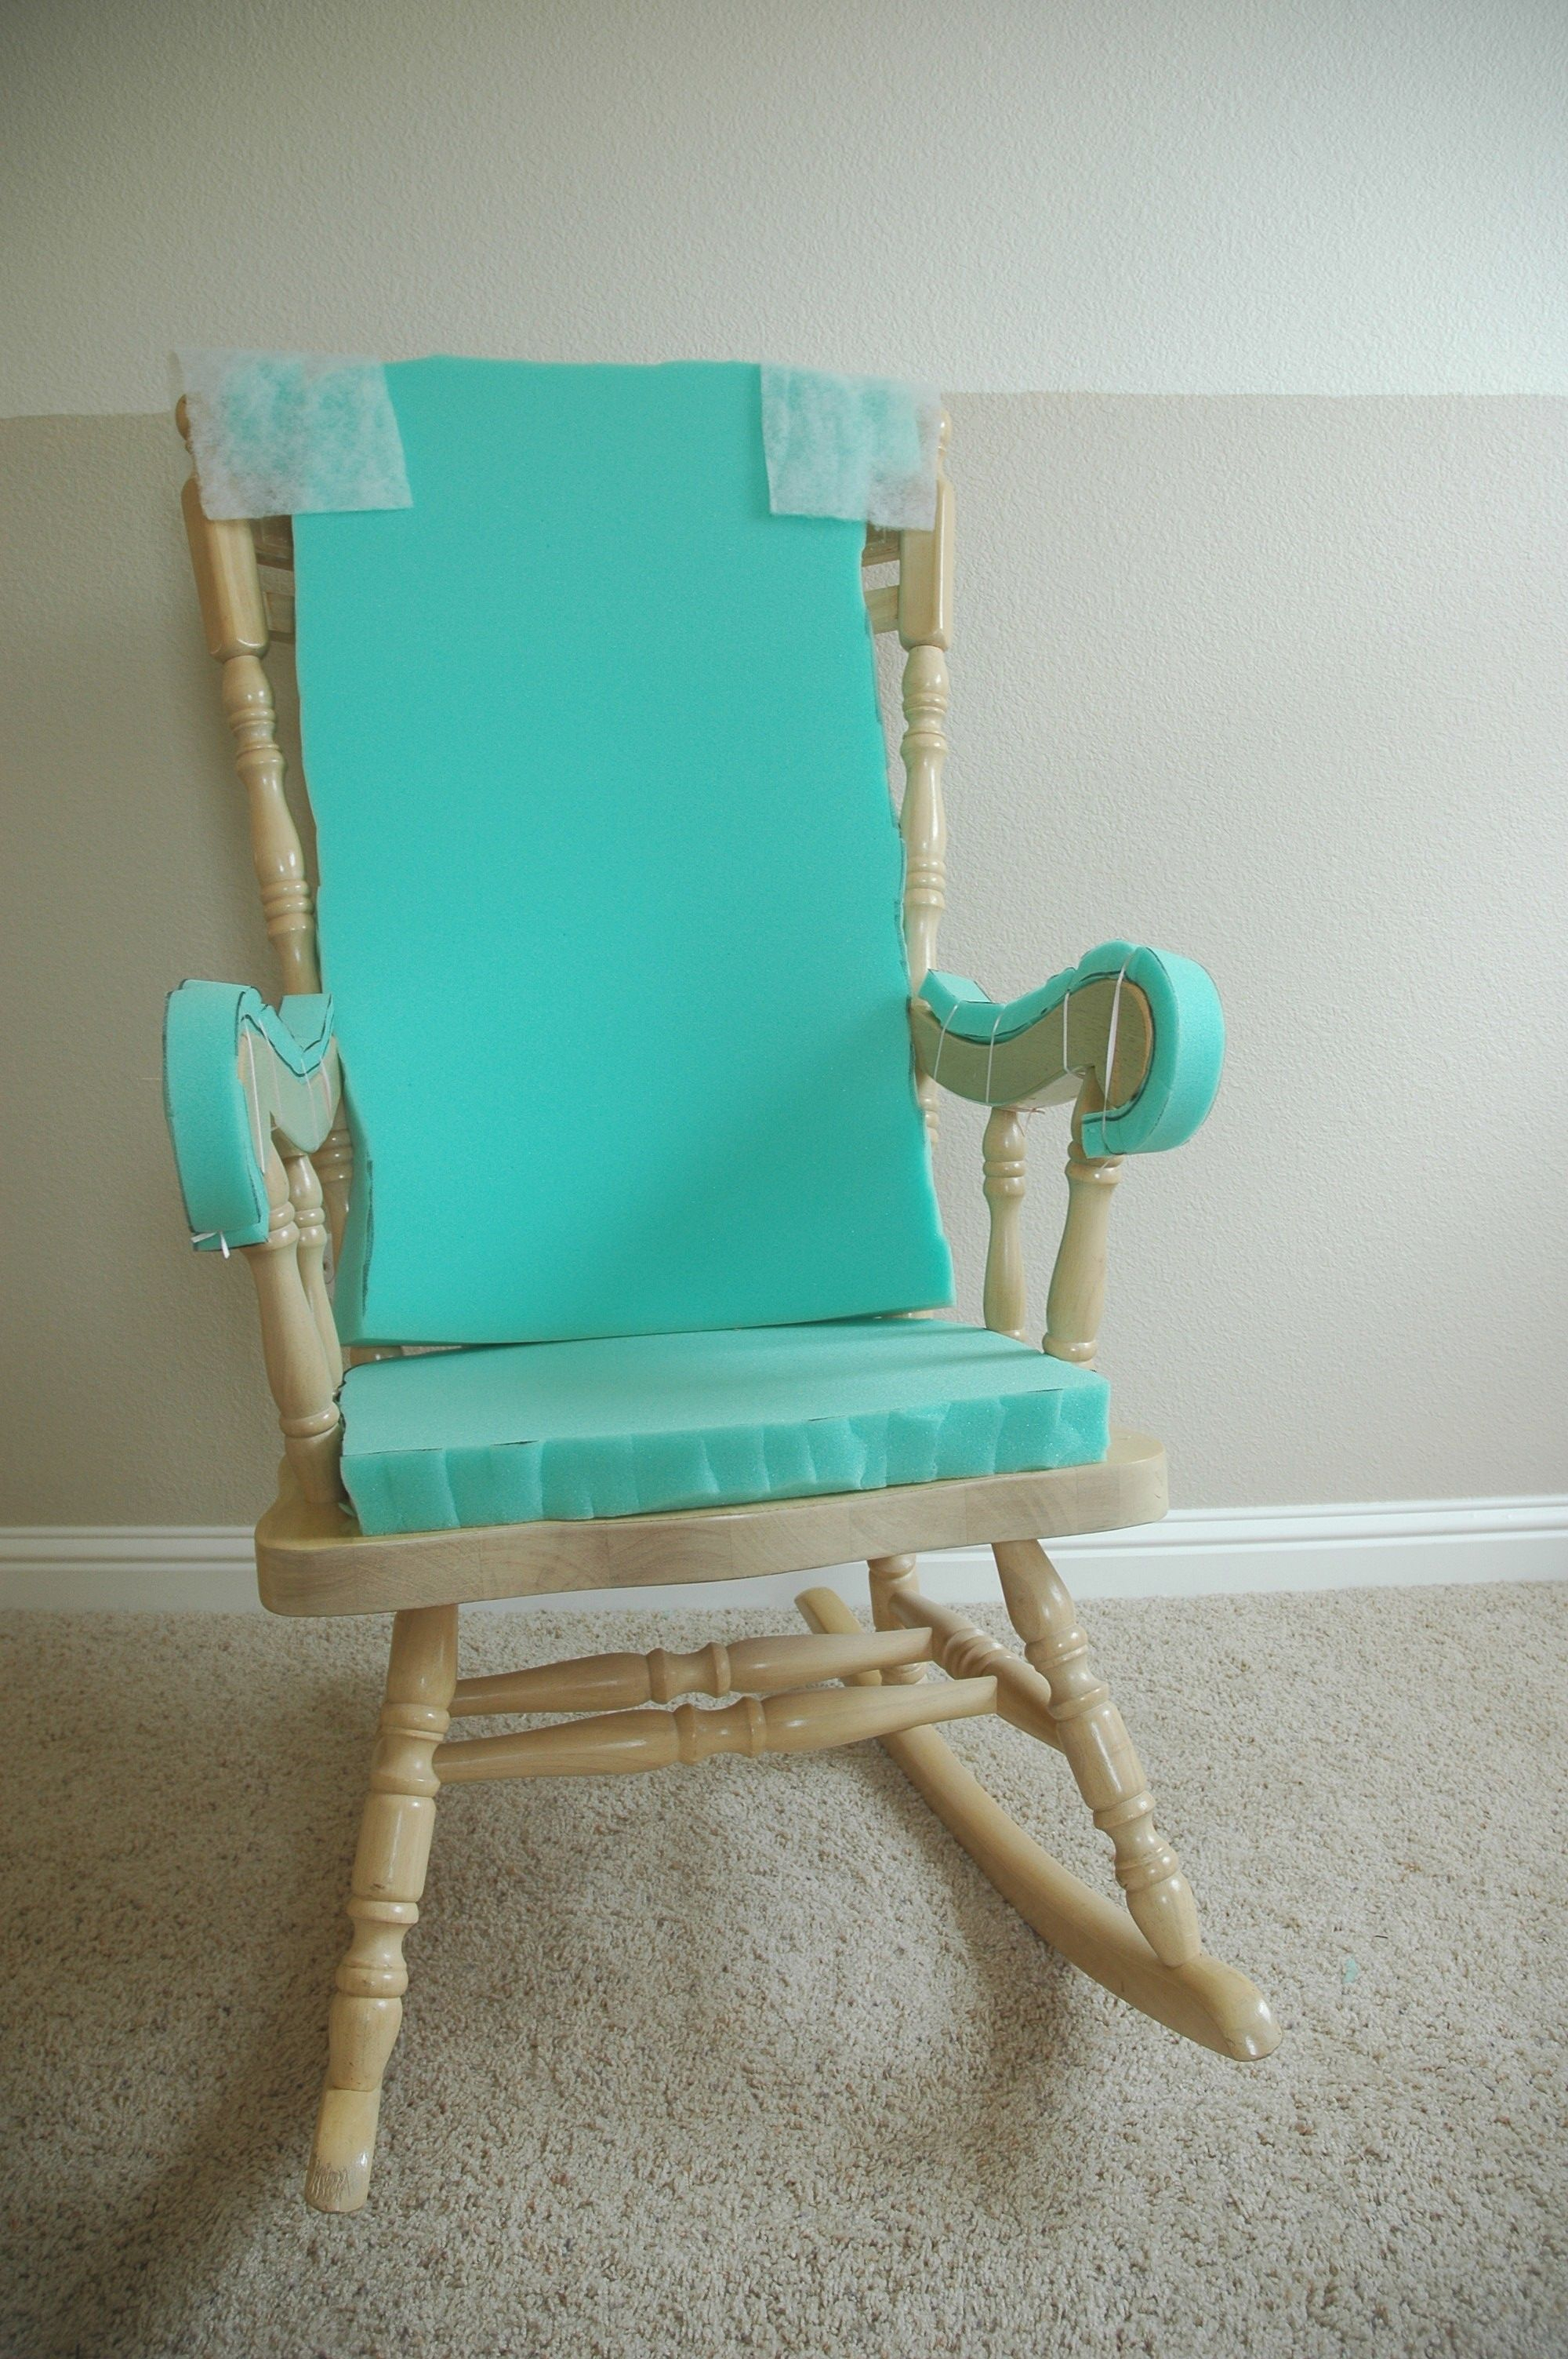 Adding Comfort To A Wooden Rocking Chair – Part One | Sewing In Wooden Rocking Chairs With Fabric Upholstered Cushions, White (View 1 of 20)